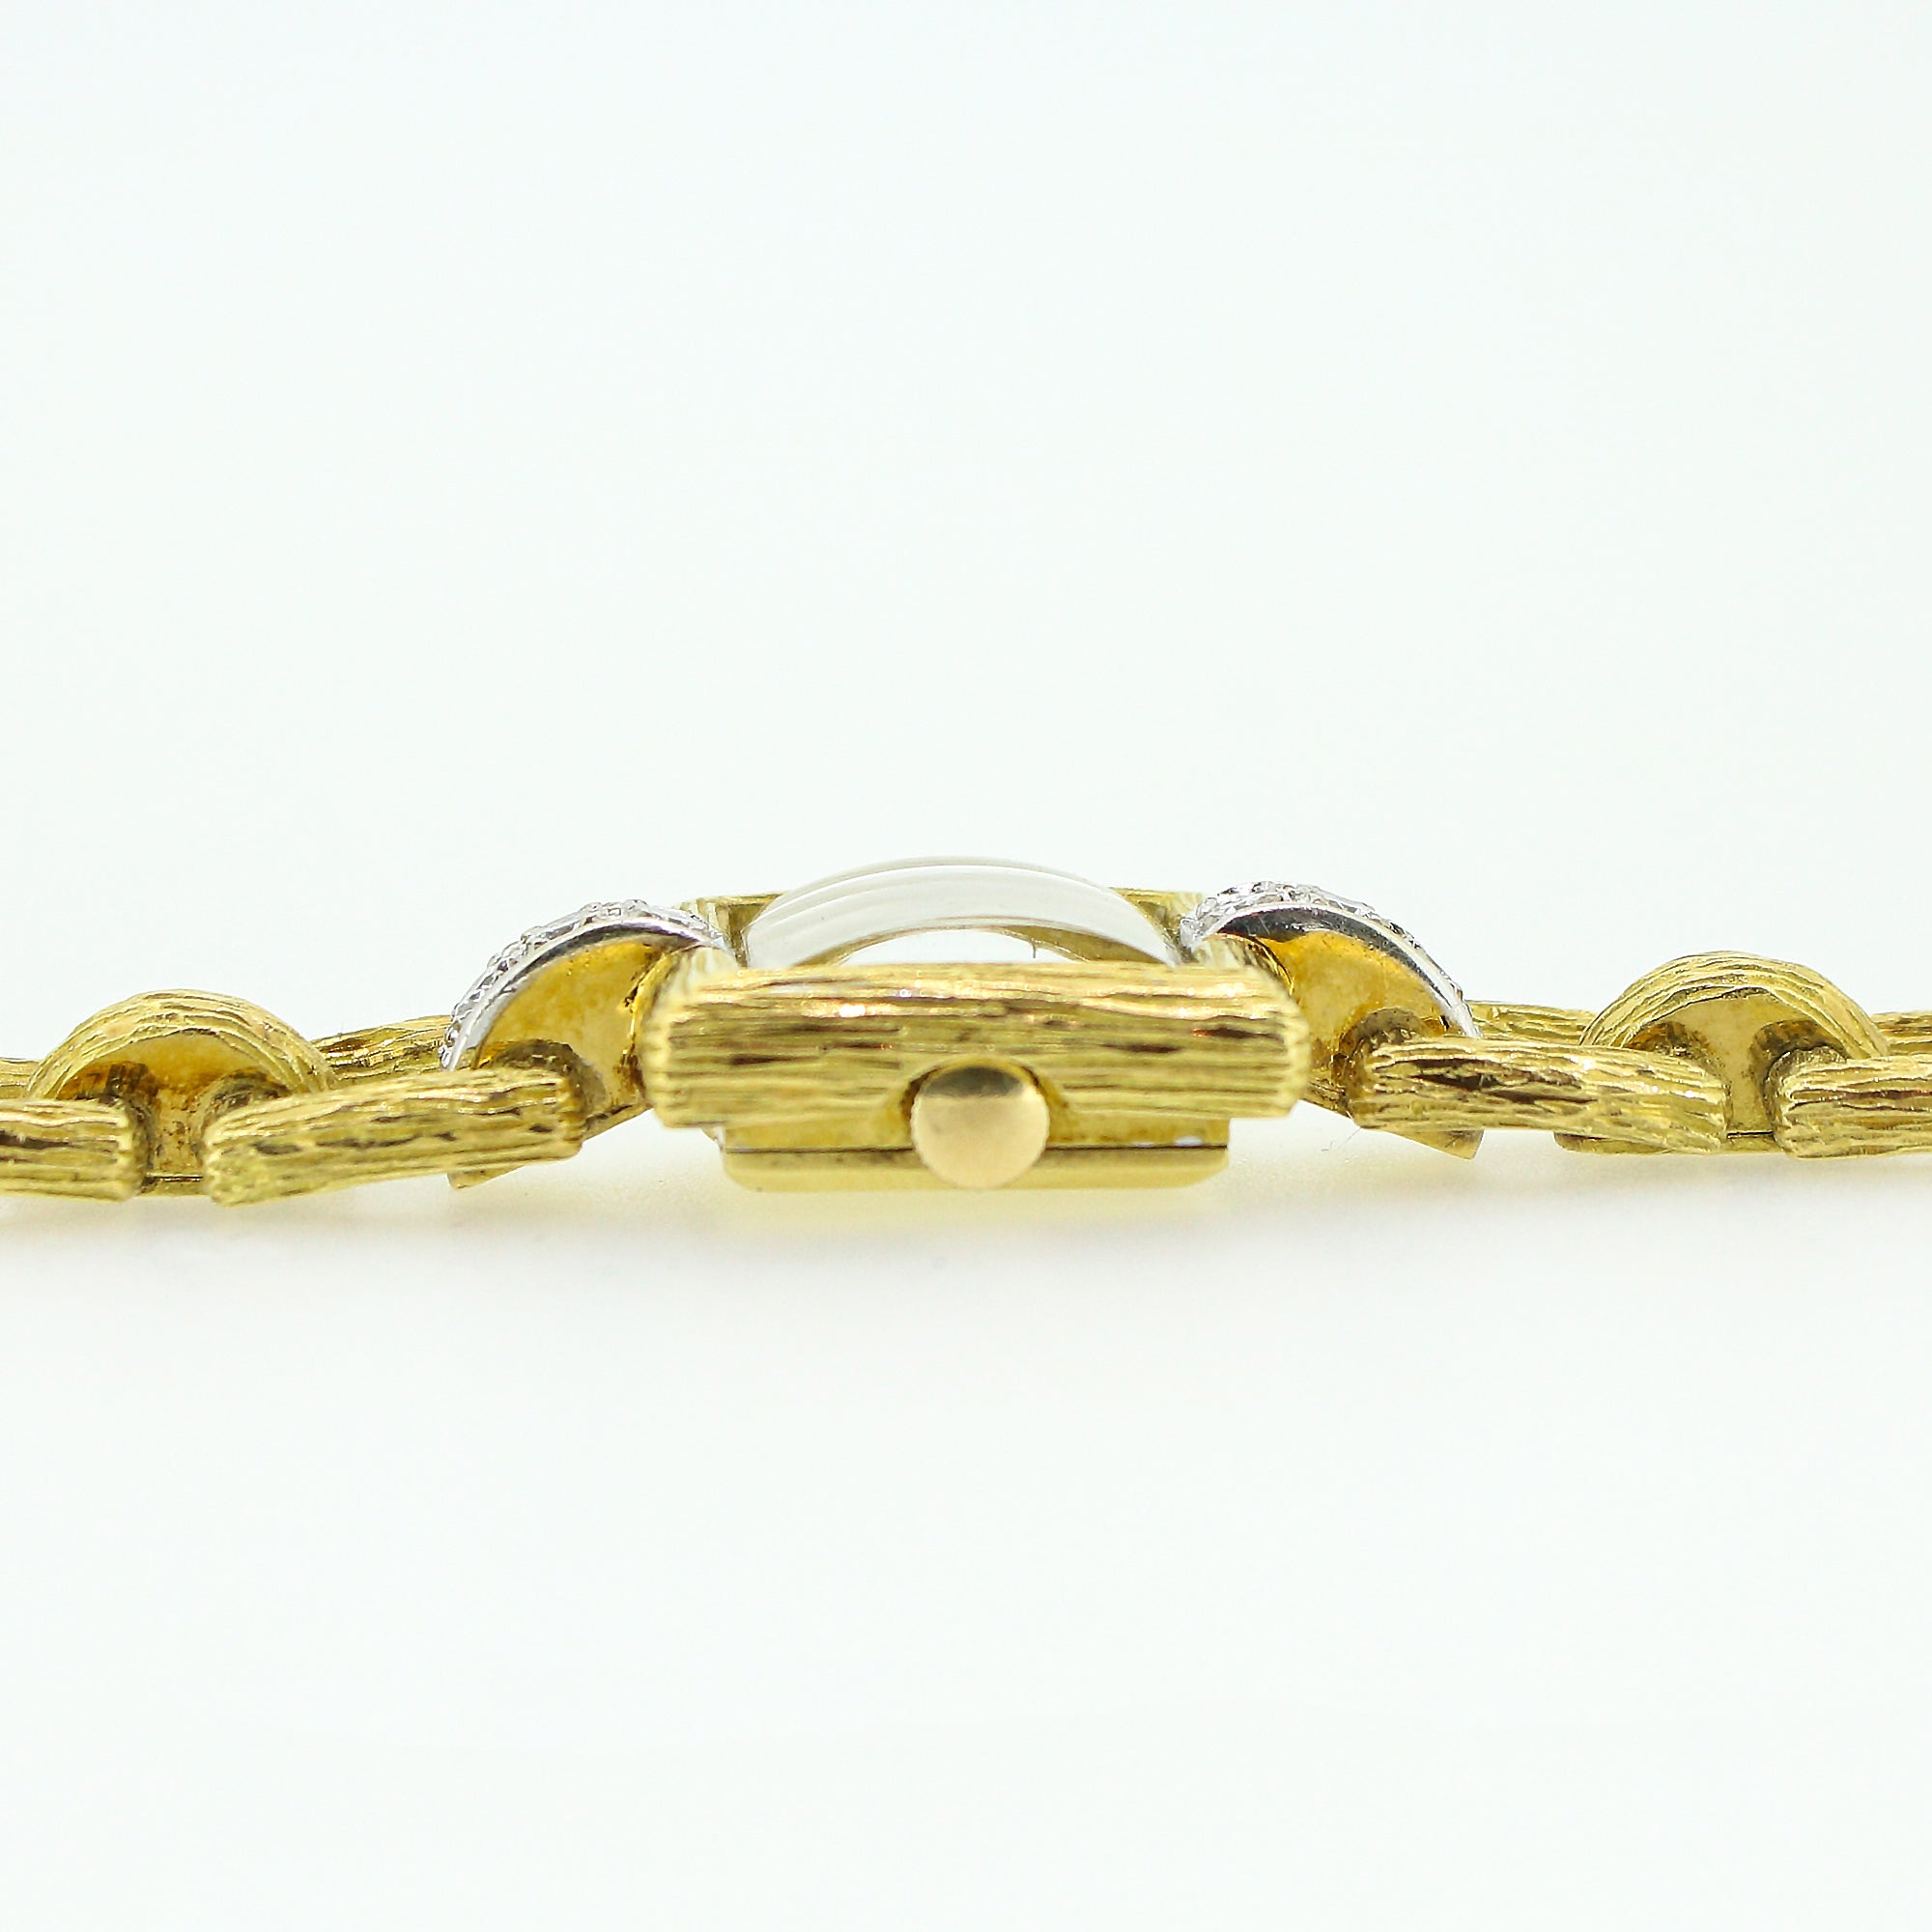 and clasp stamped security gold ready design italian yellow substantial solid product to midwest jewelry wear vintage bracelet fine objects white art